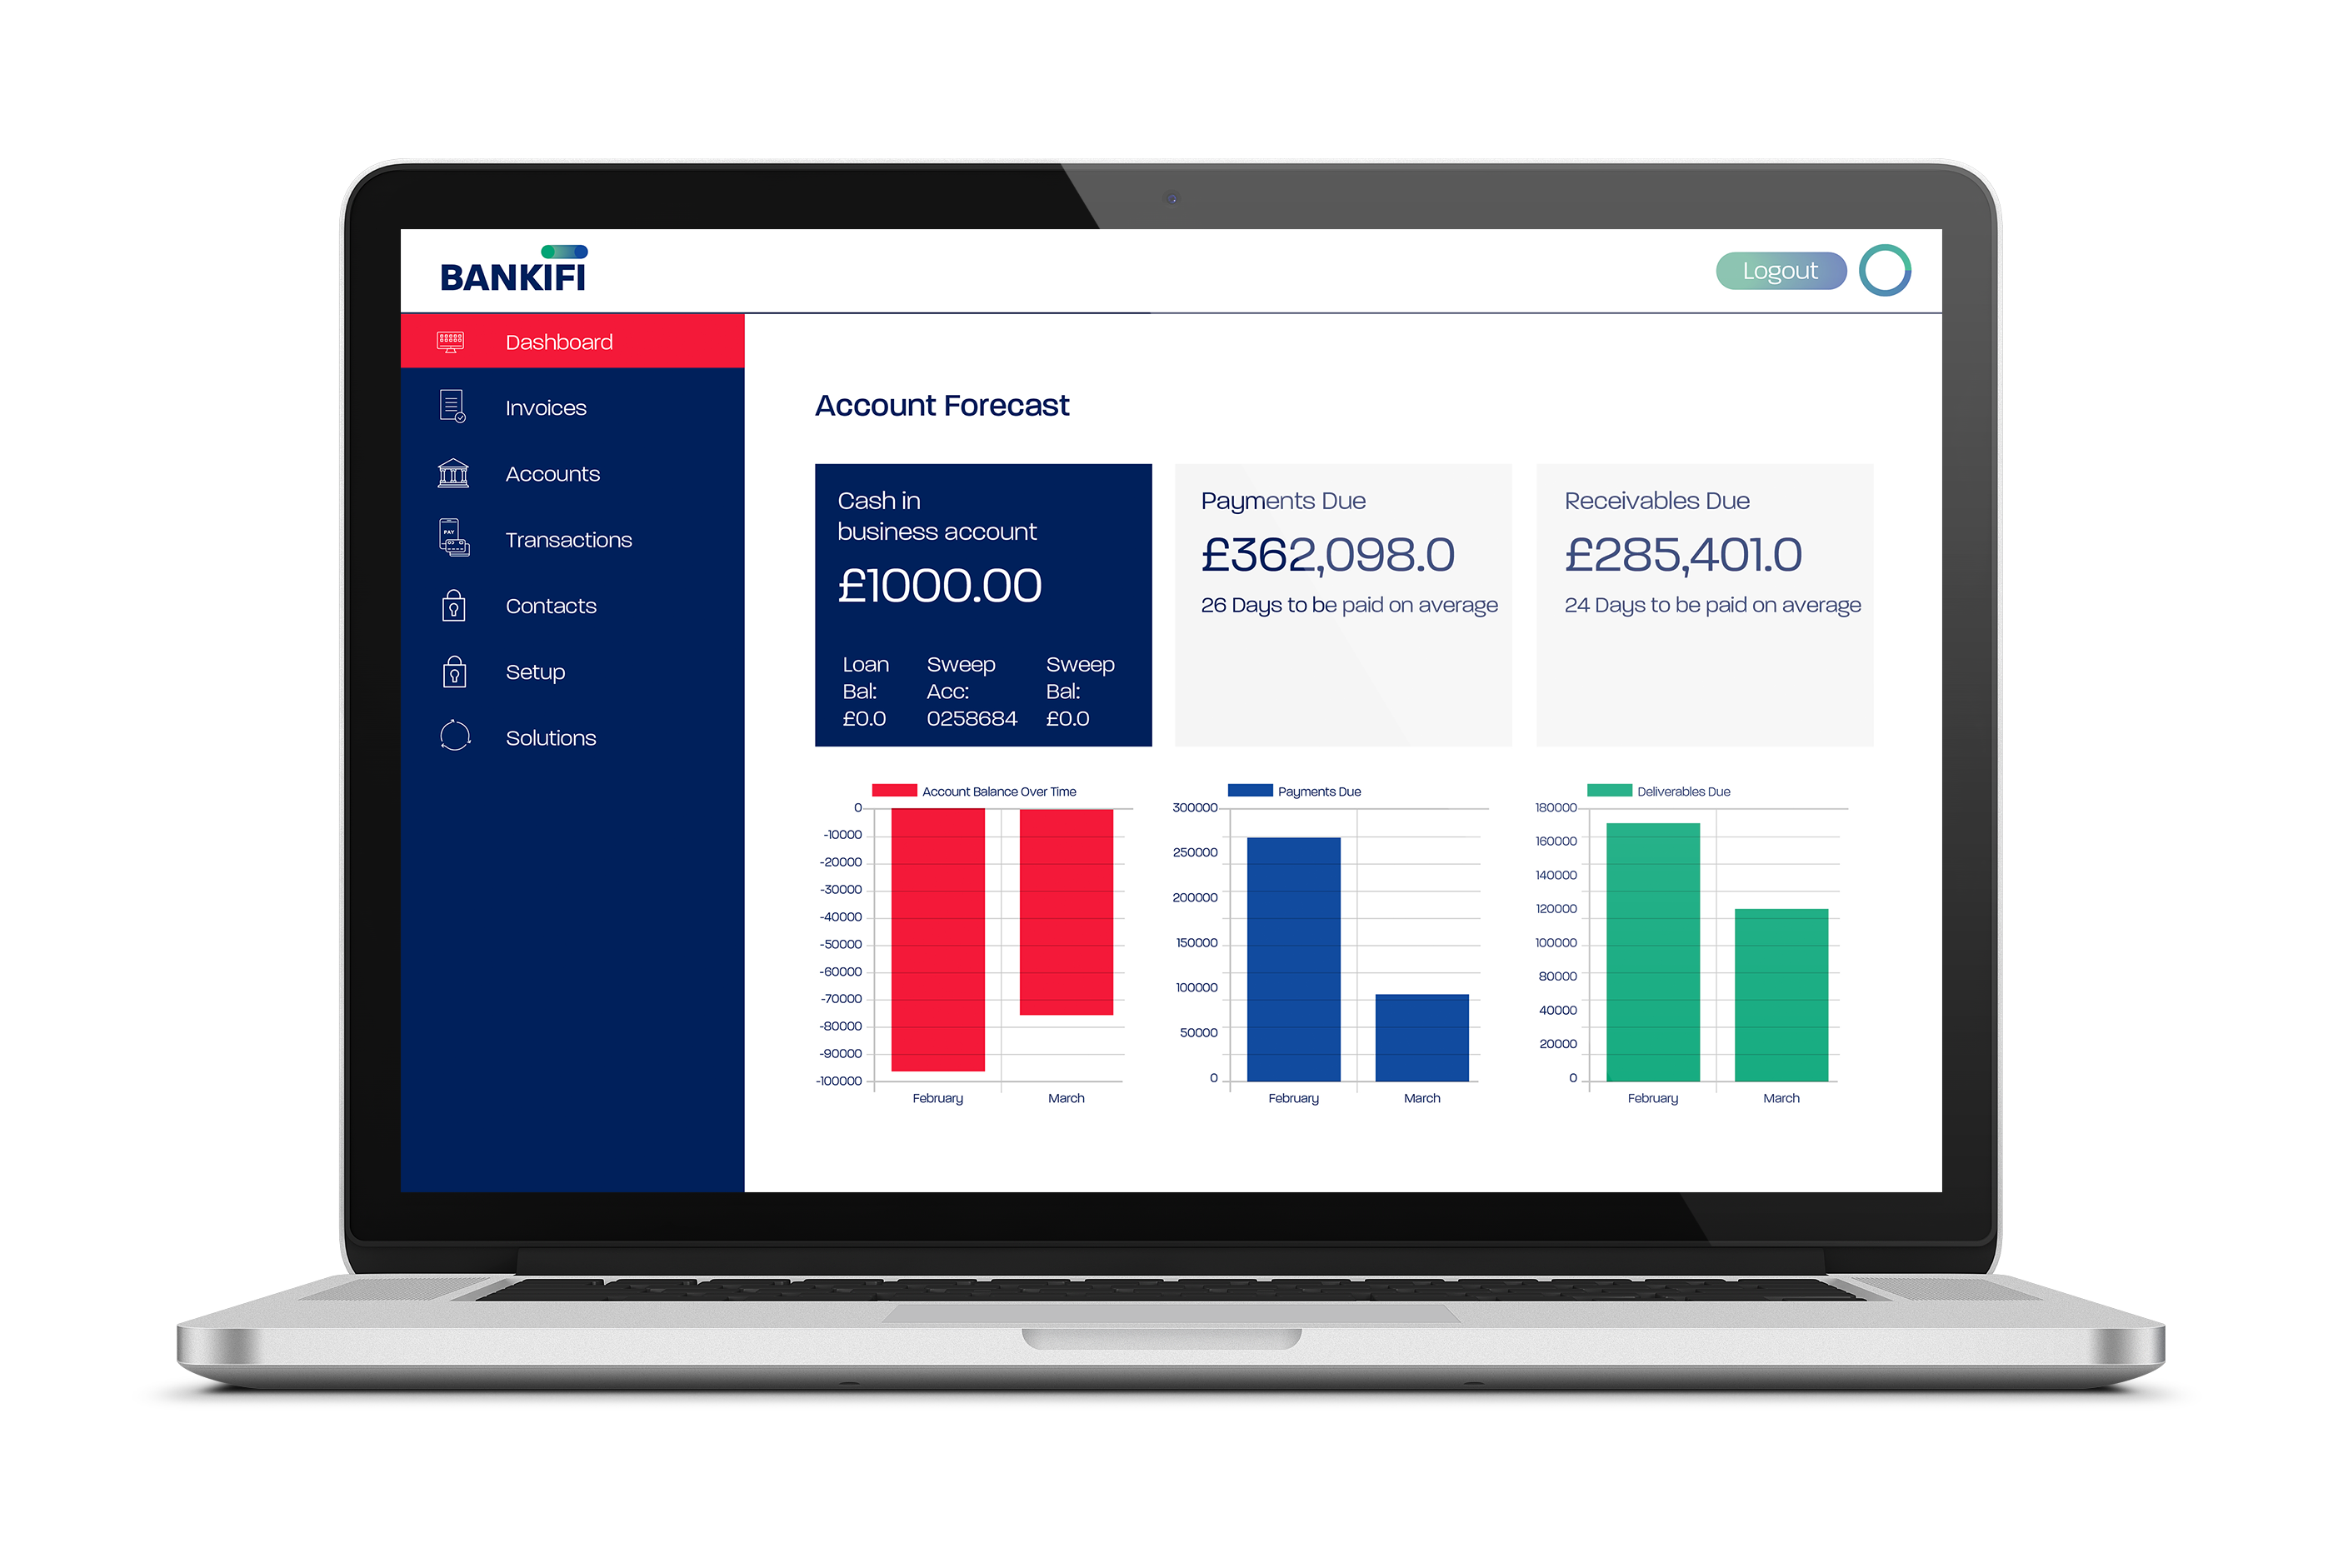 Press Release: BankiFi continue expansion with launch in Australia